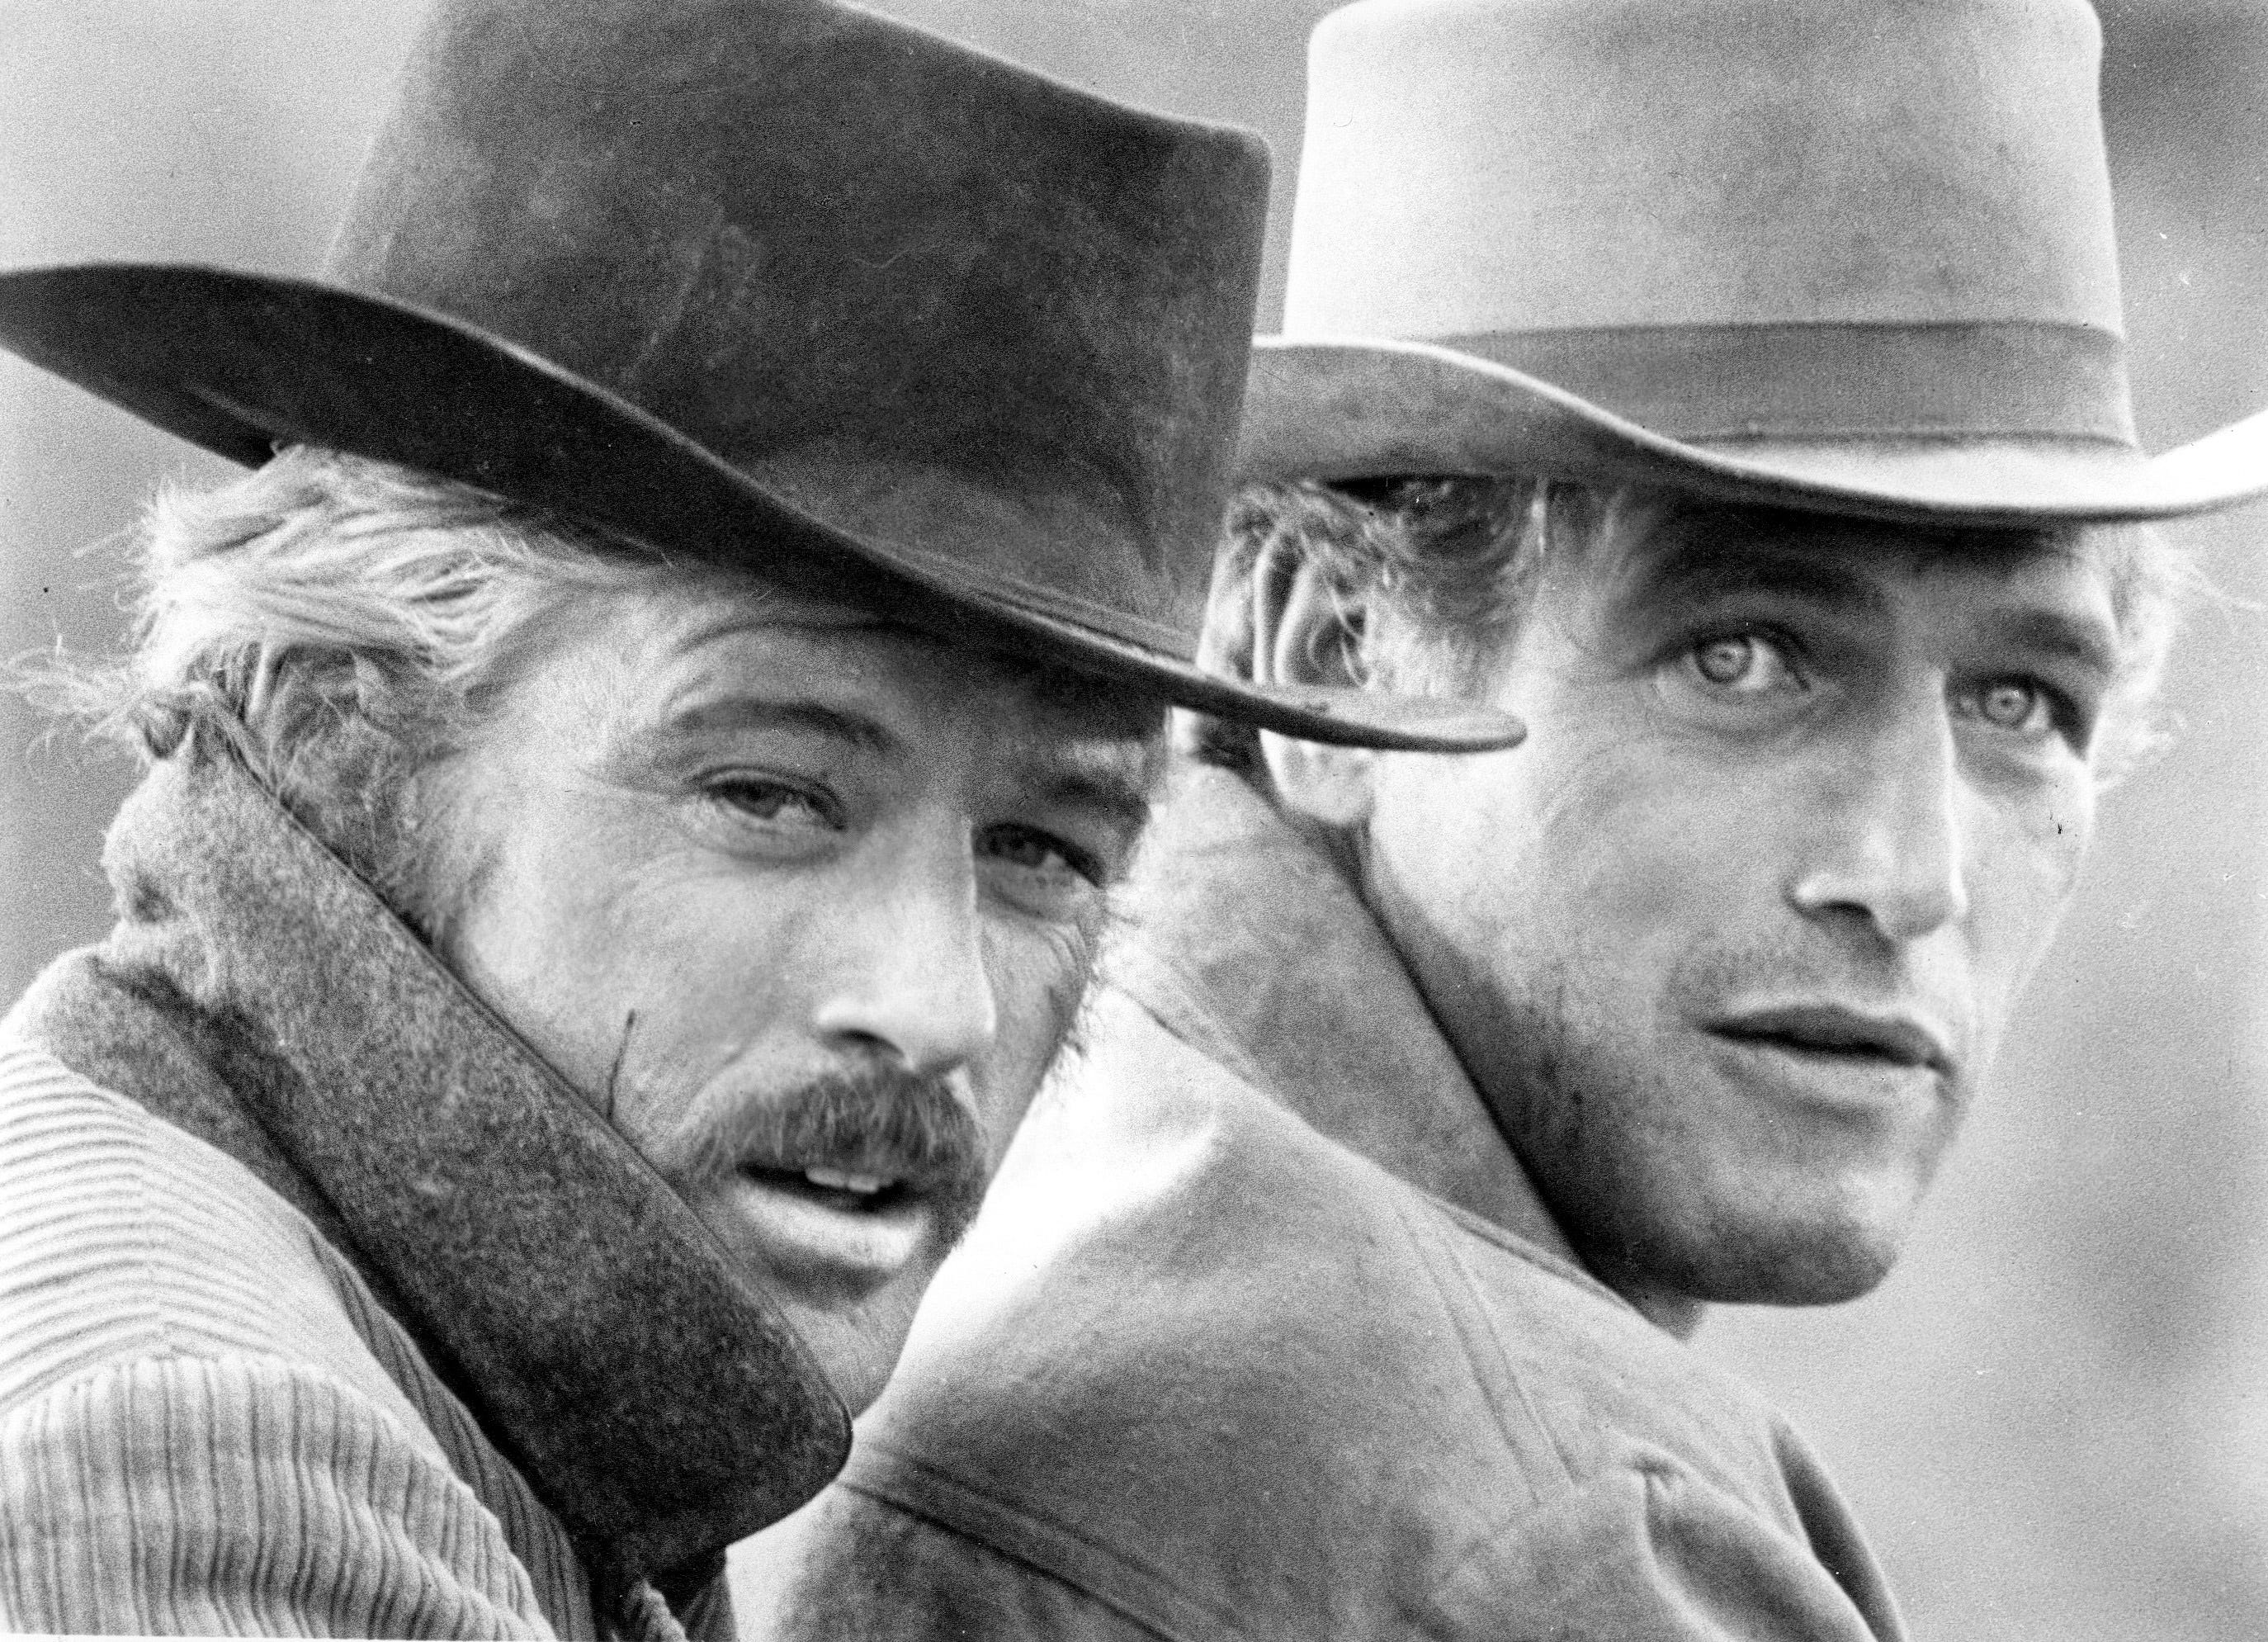 How wrong I was : Robert Redford thought B.J. Thomas   Raindrops  didn t fit in  Butch Cassidy